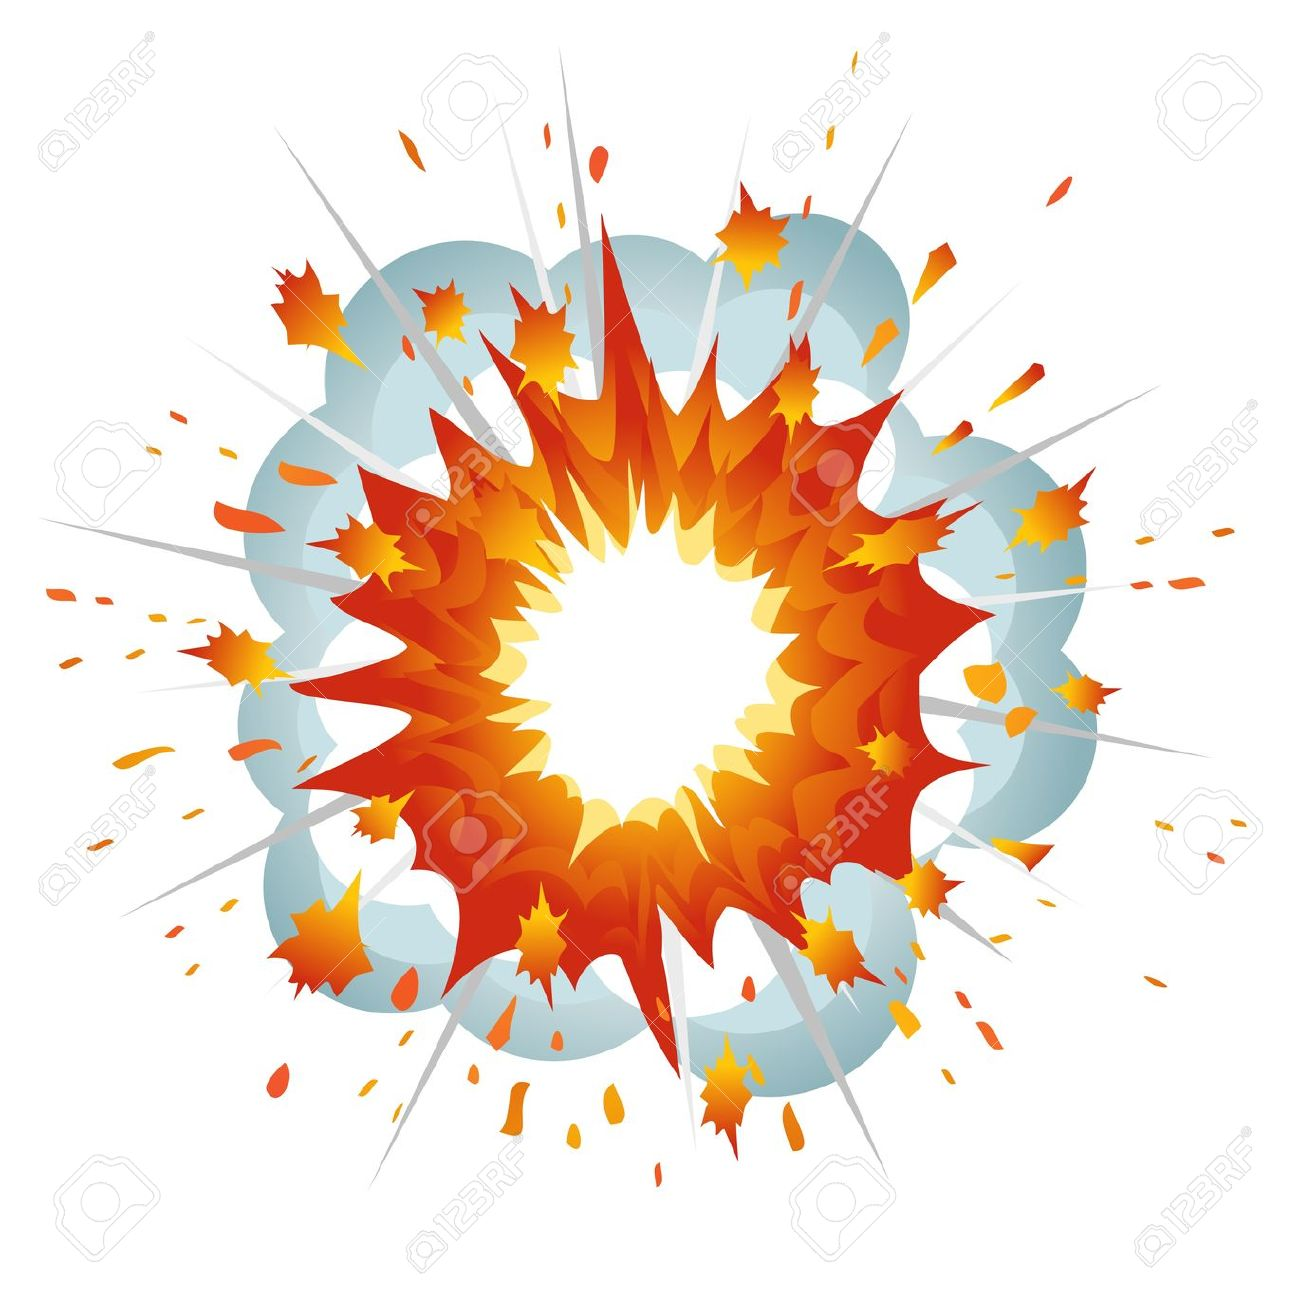 Clipart dynamite explosion.